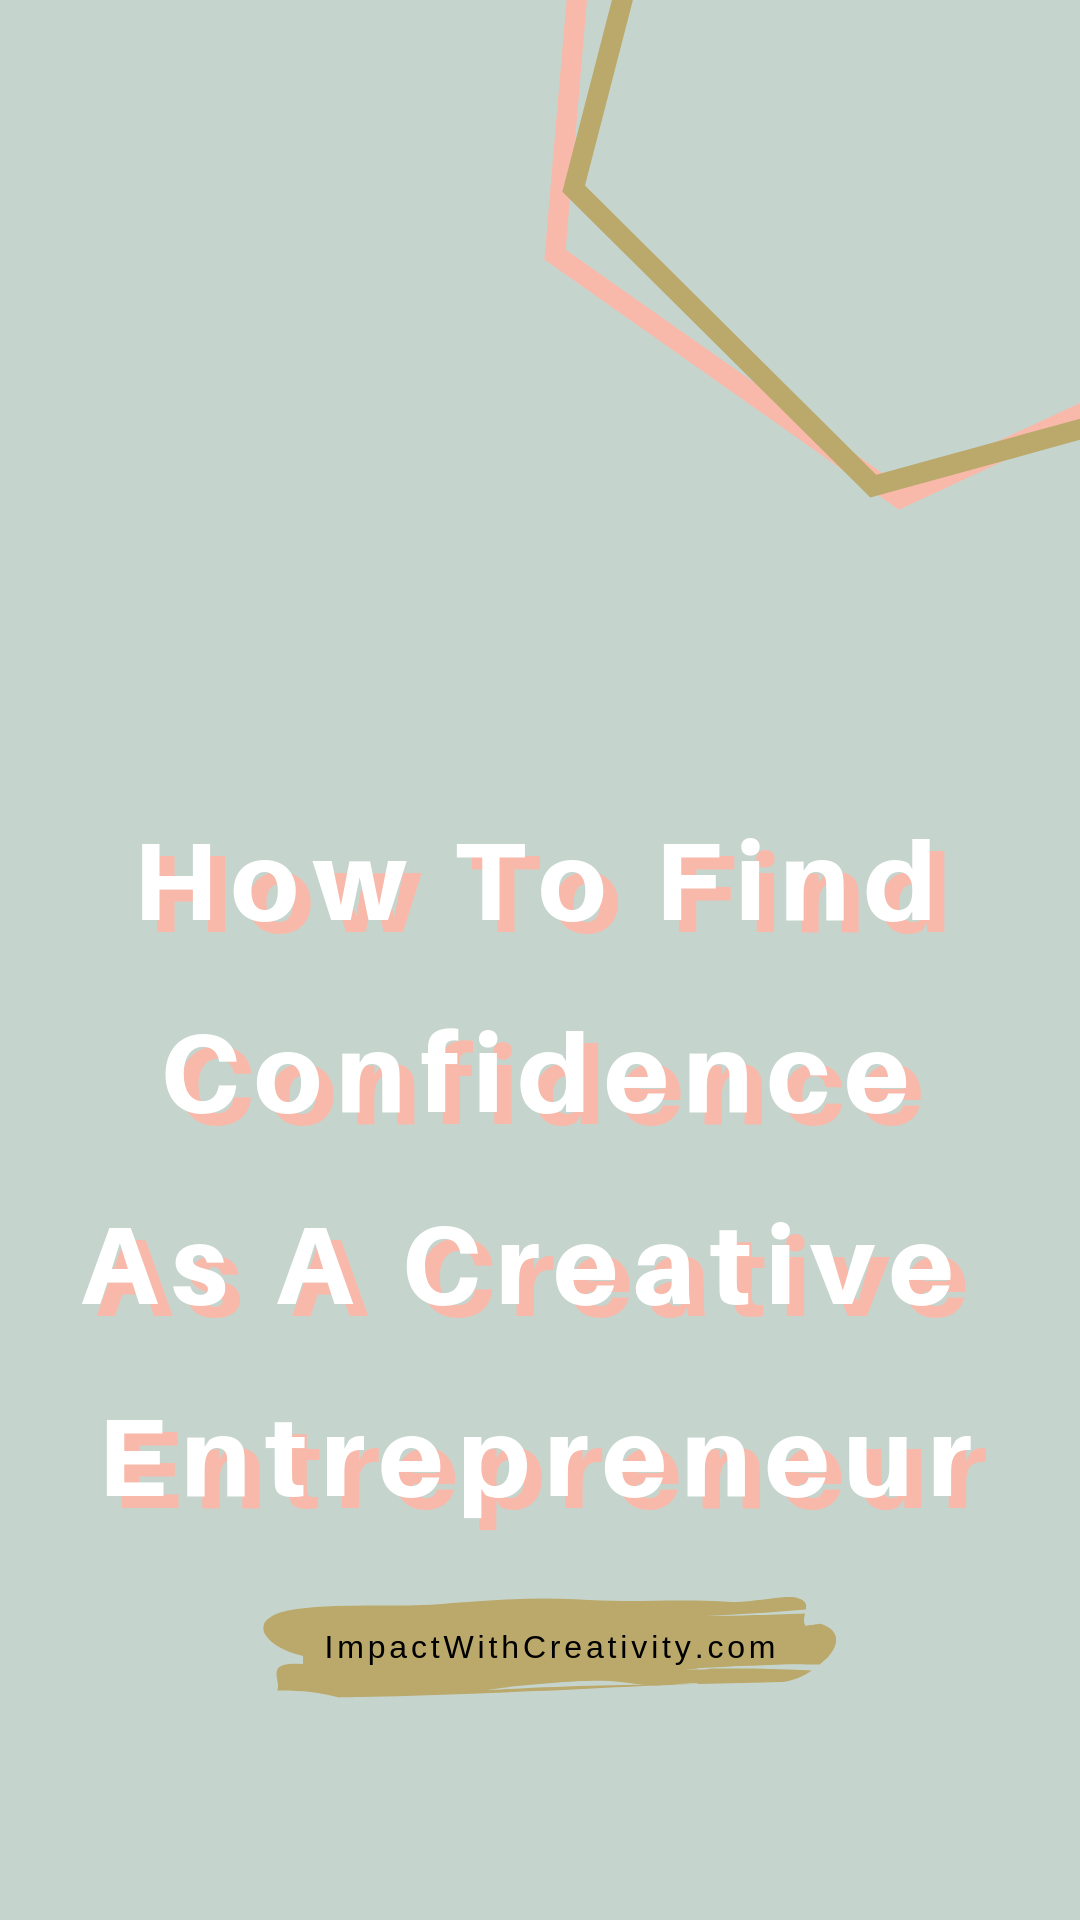 How to find confidence as a creative entrepreneur